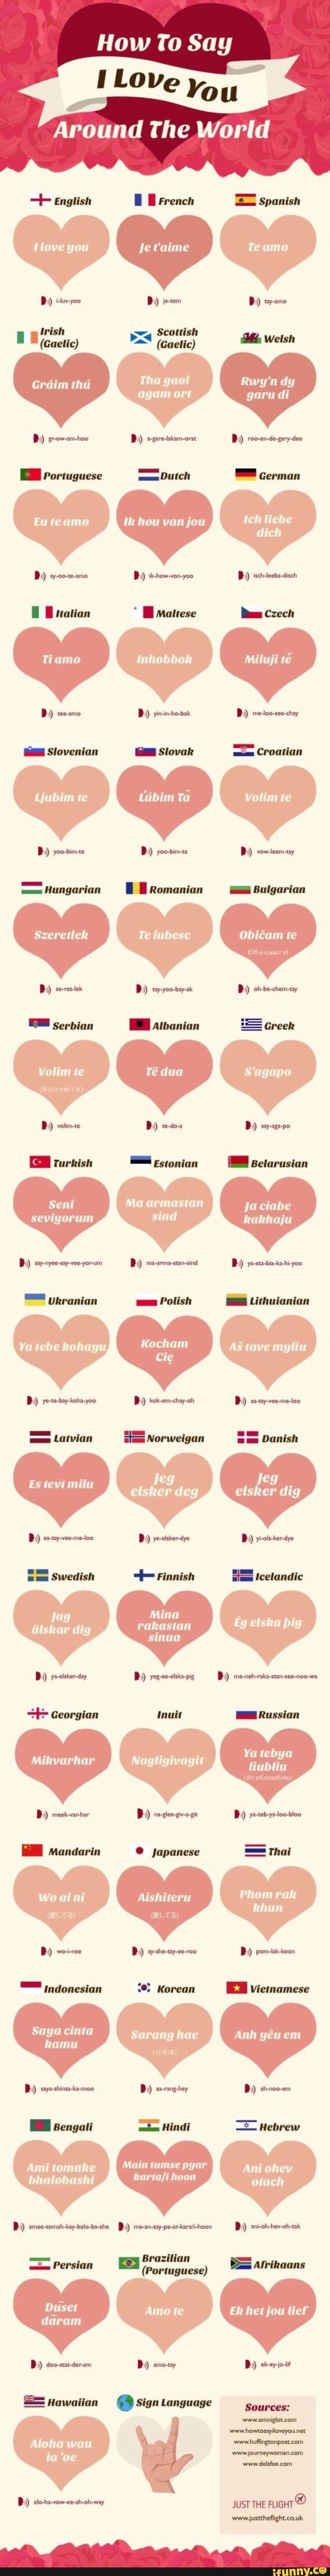 how to say love in different languages list